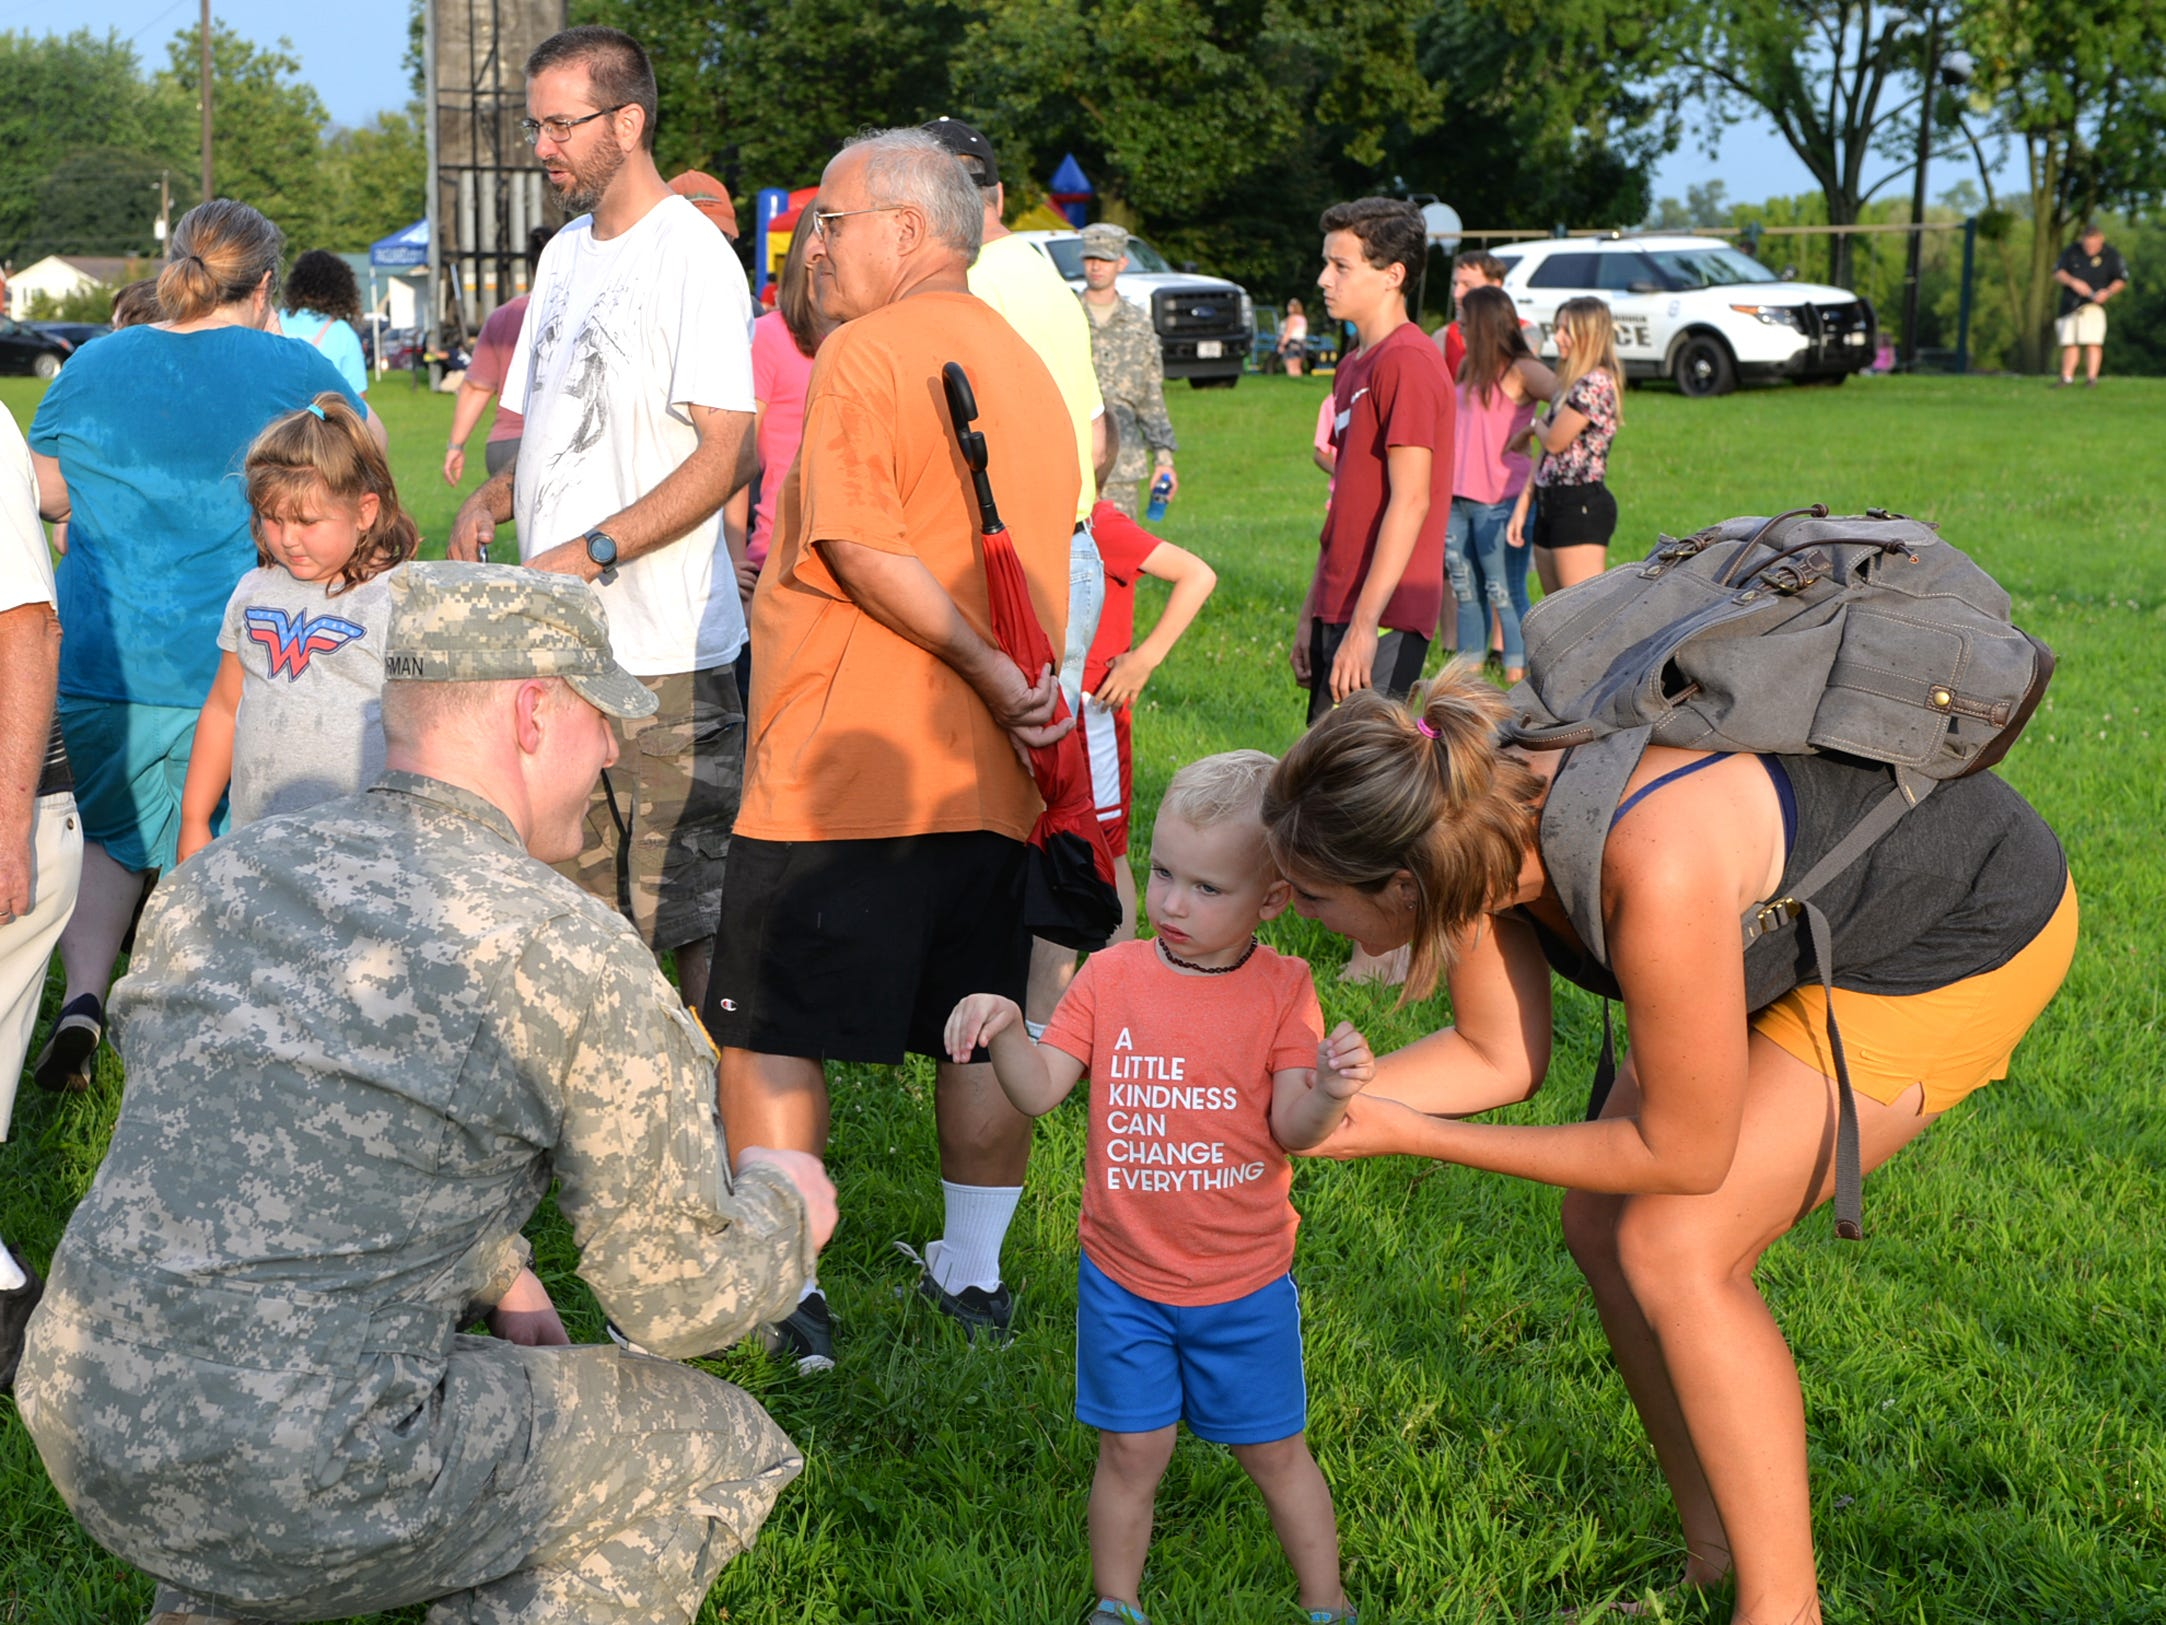 The Cleona Borough Police Department held National Night Out activities, including free food and entertainment, at the Cleona Community Park on Tuesday evening, August 7, 2018.